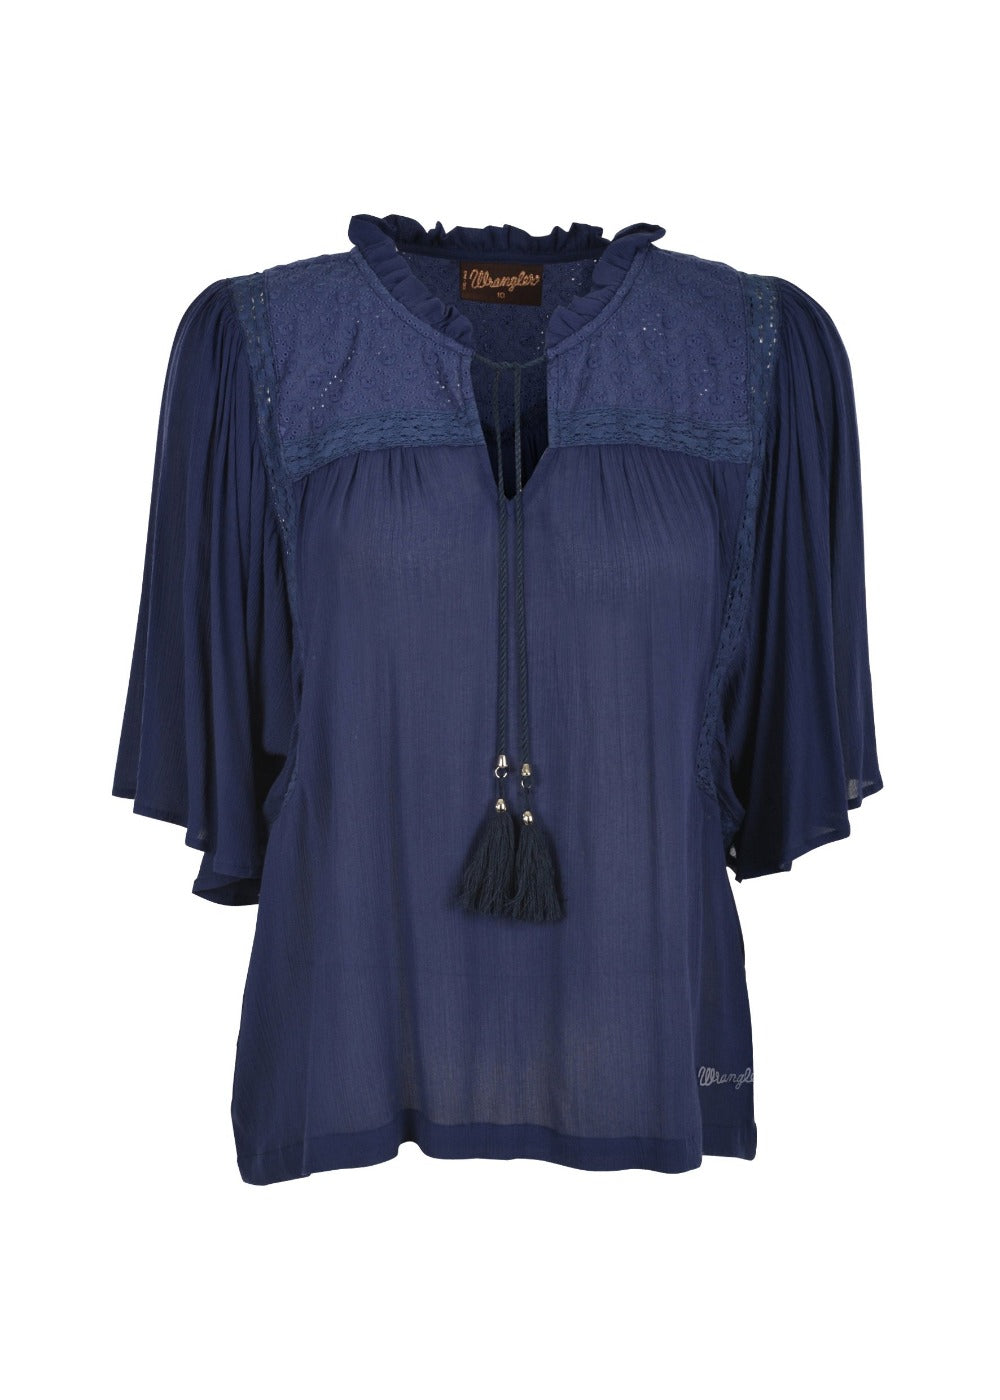 Wrangler Womens Martine Blouse